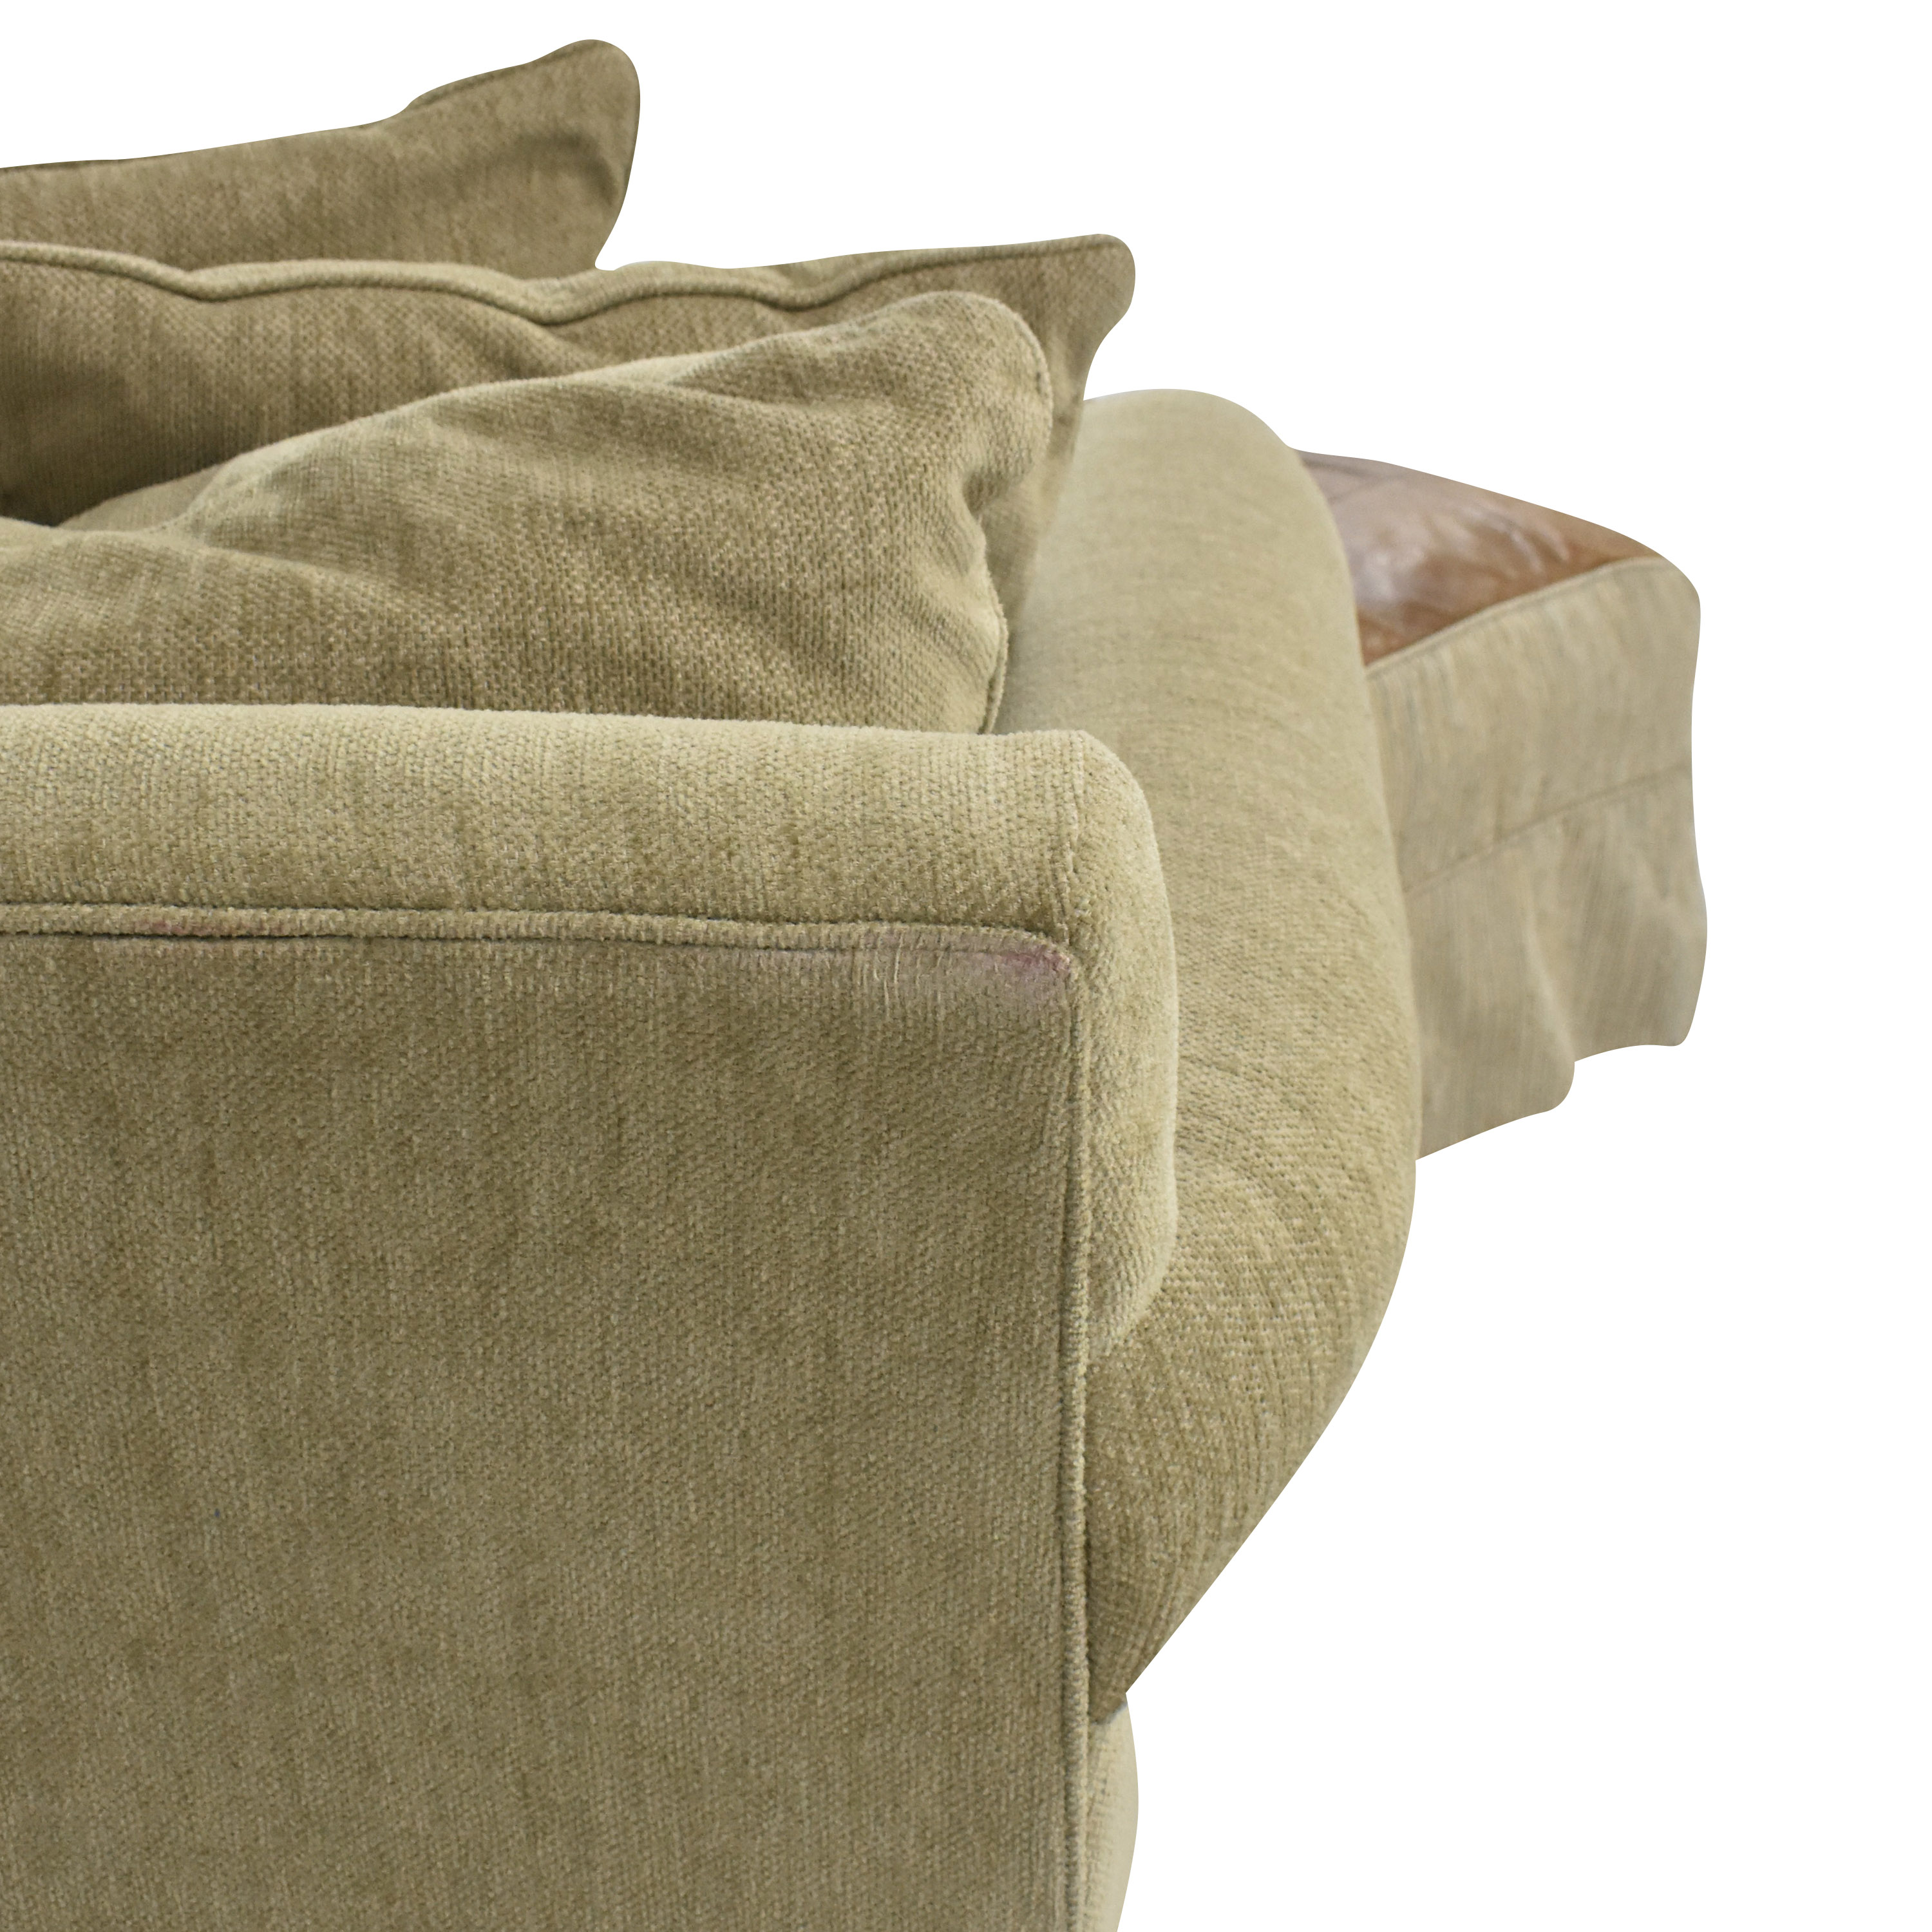 Macy's Macy's Modern Concepts Sofa with Ottoman beige